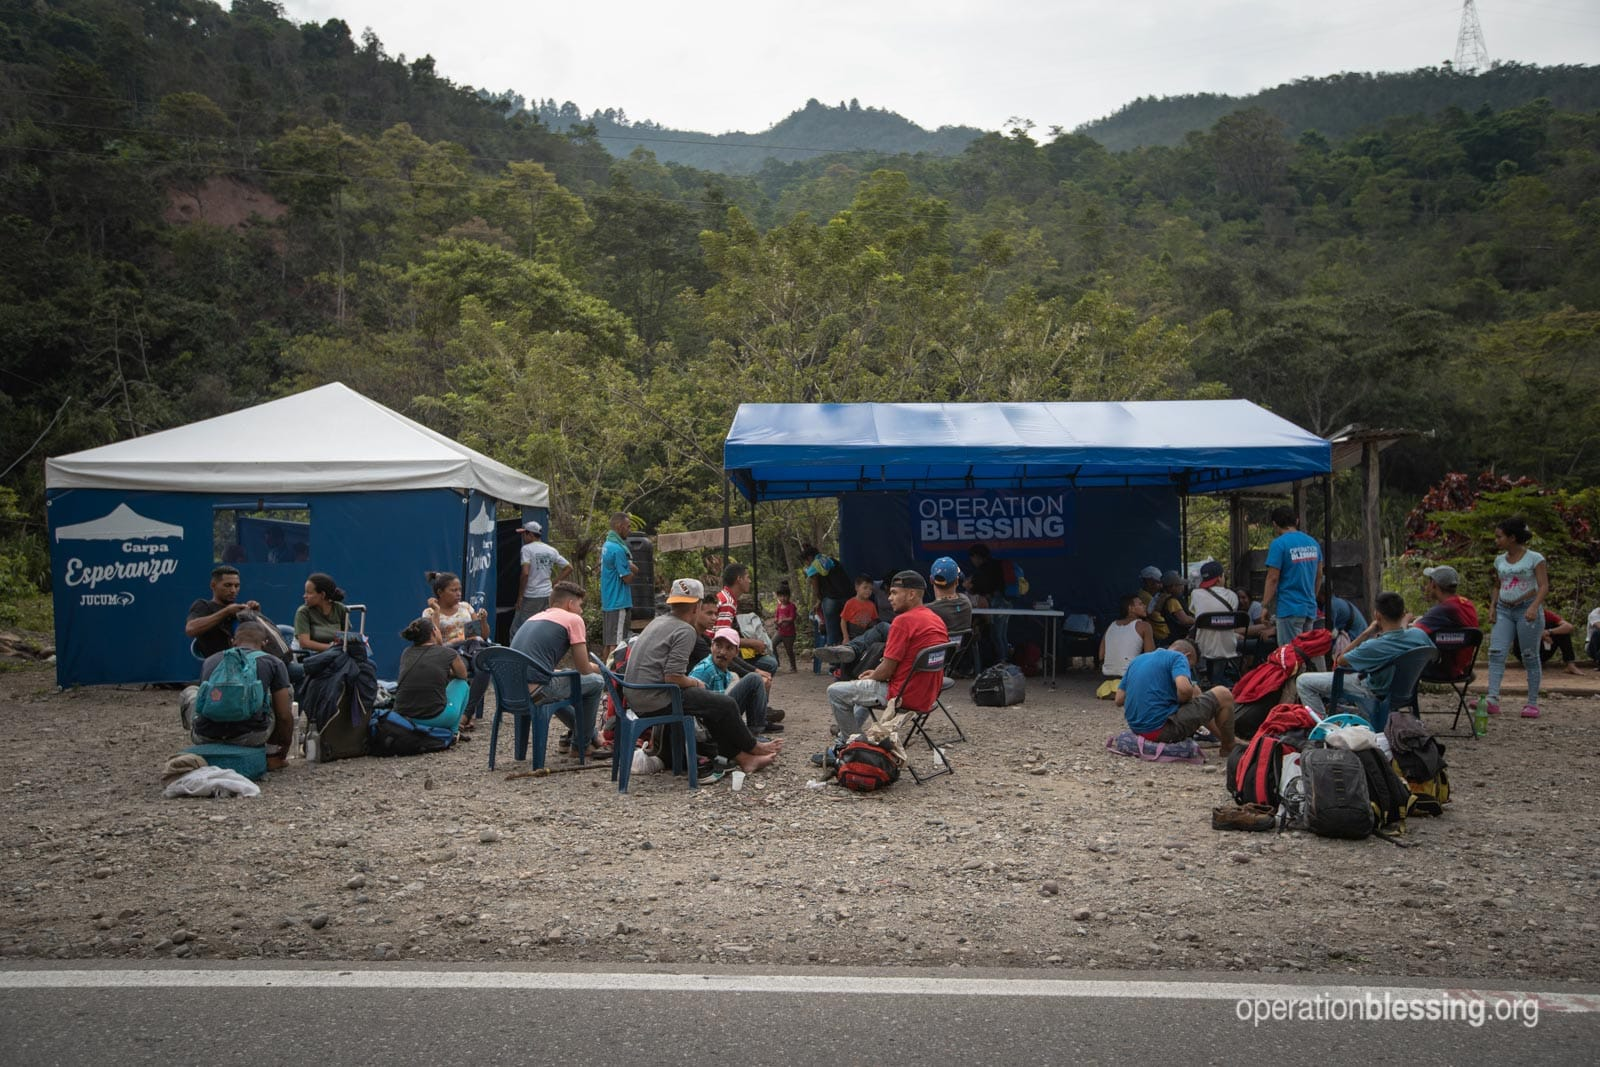 An Operation Blessing medical station to help Venezuelan refugees along the road in Colombia.